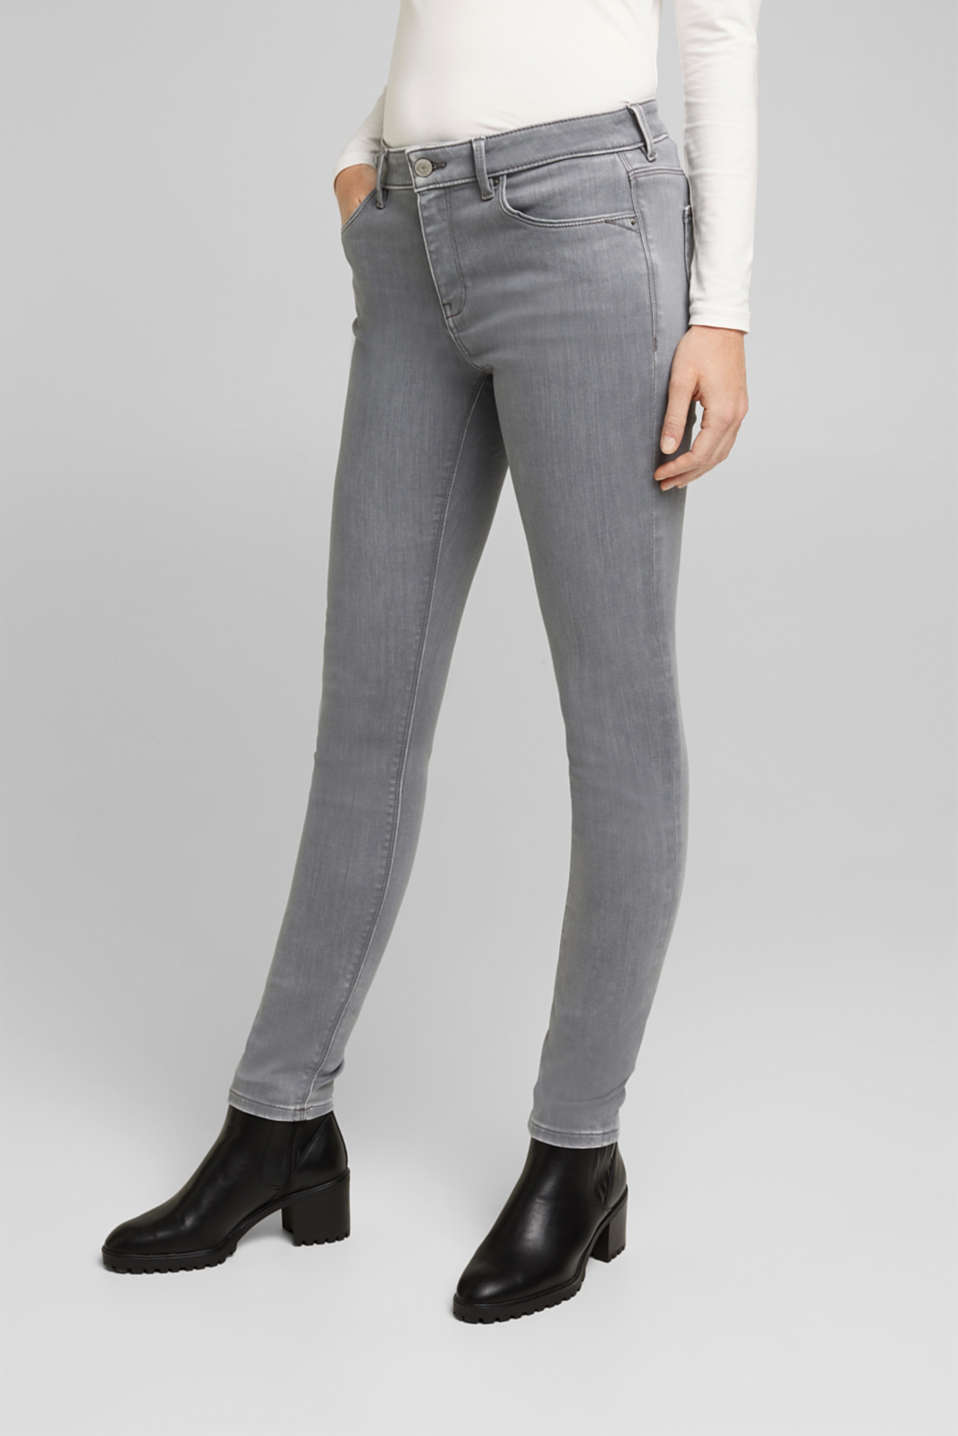 Esprit - Skinny jeans with a touch of cashmere